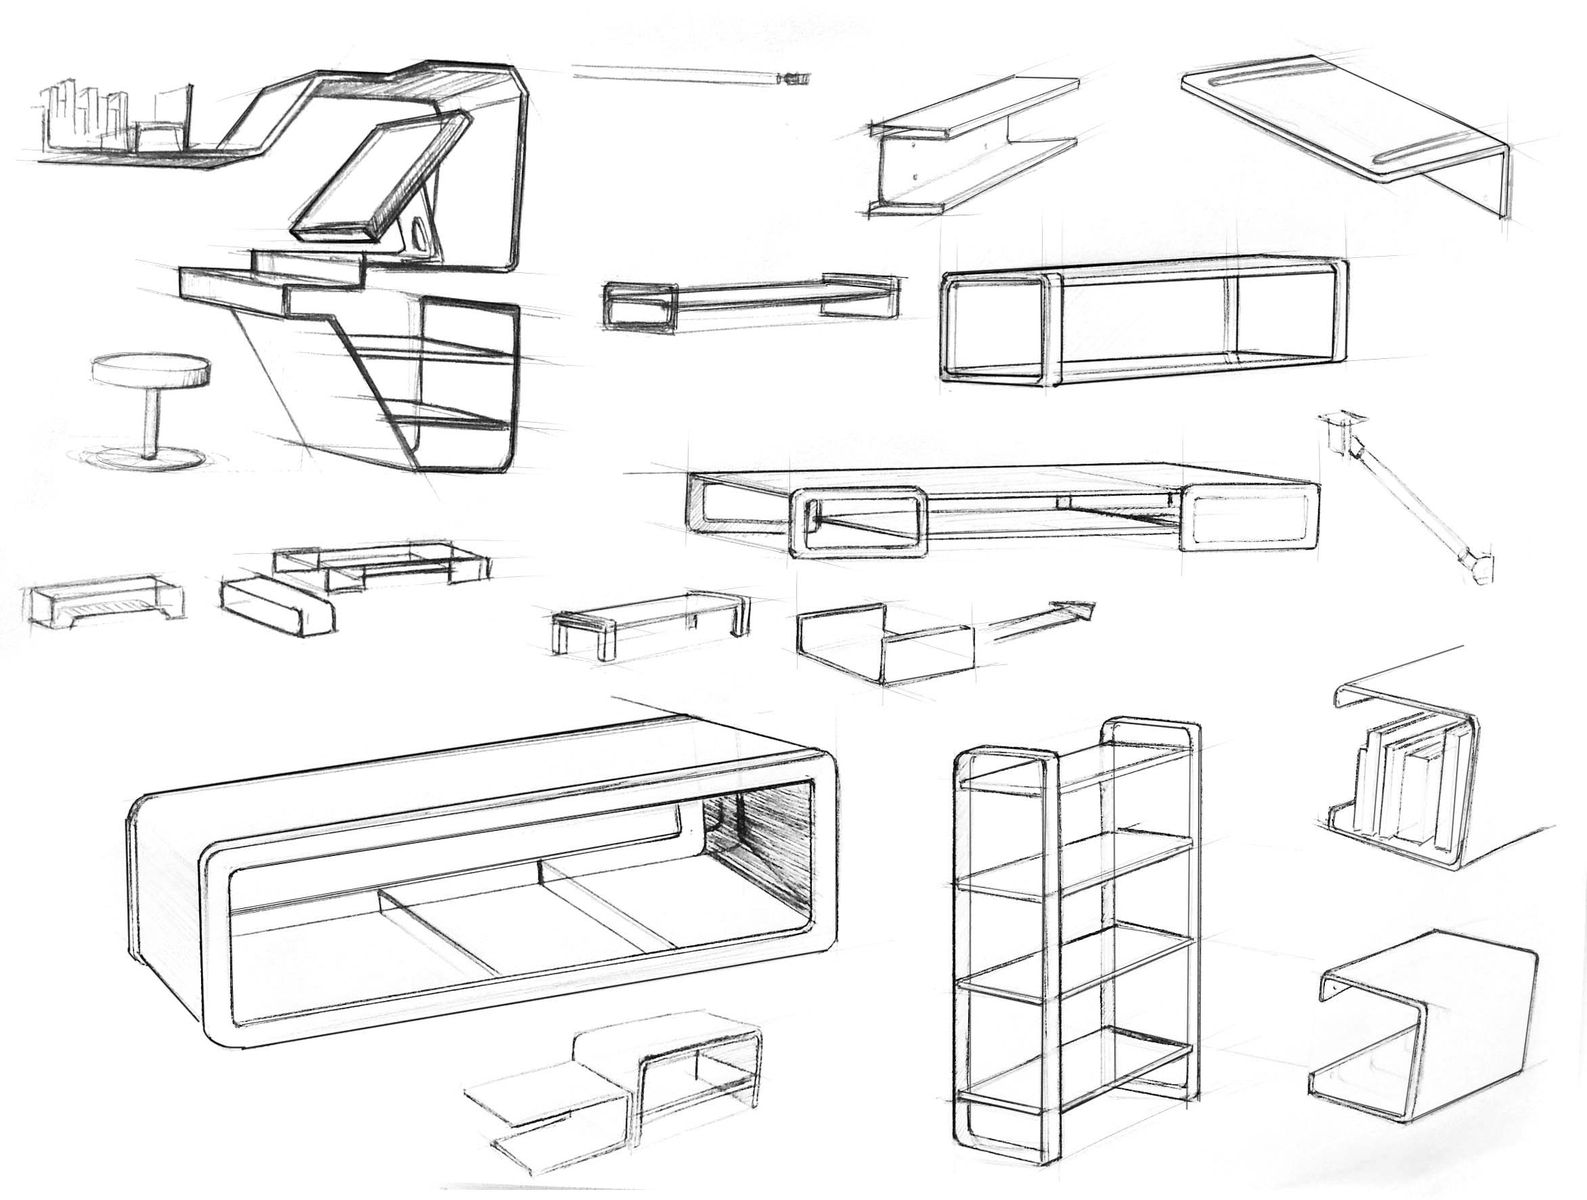 Furniture Sketches Furniture Design Sketches Google Search Industrial Design